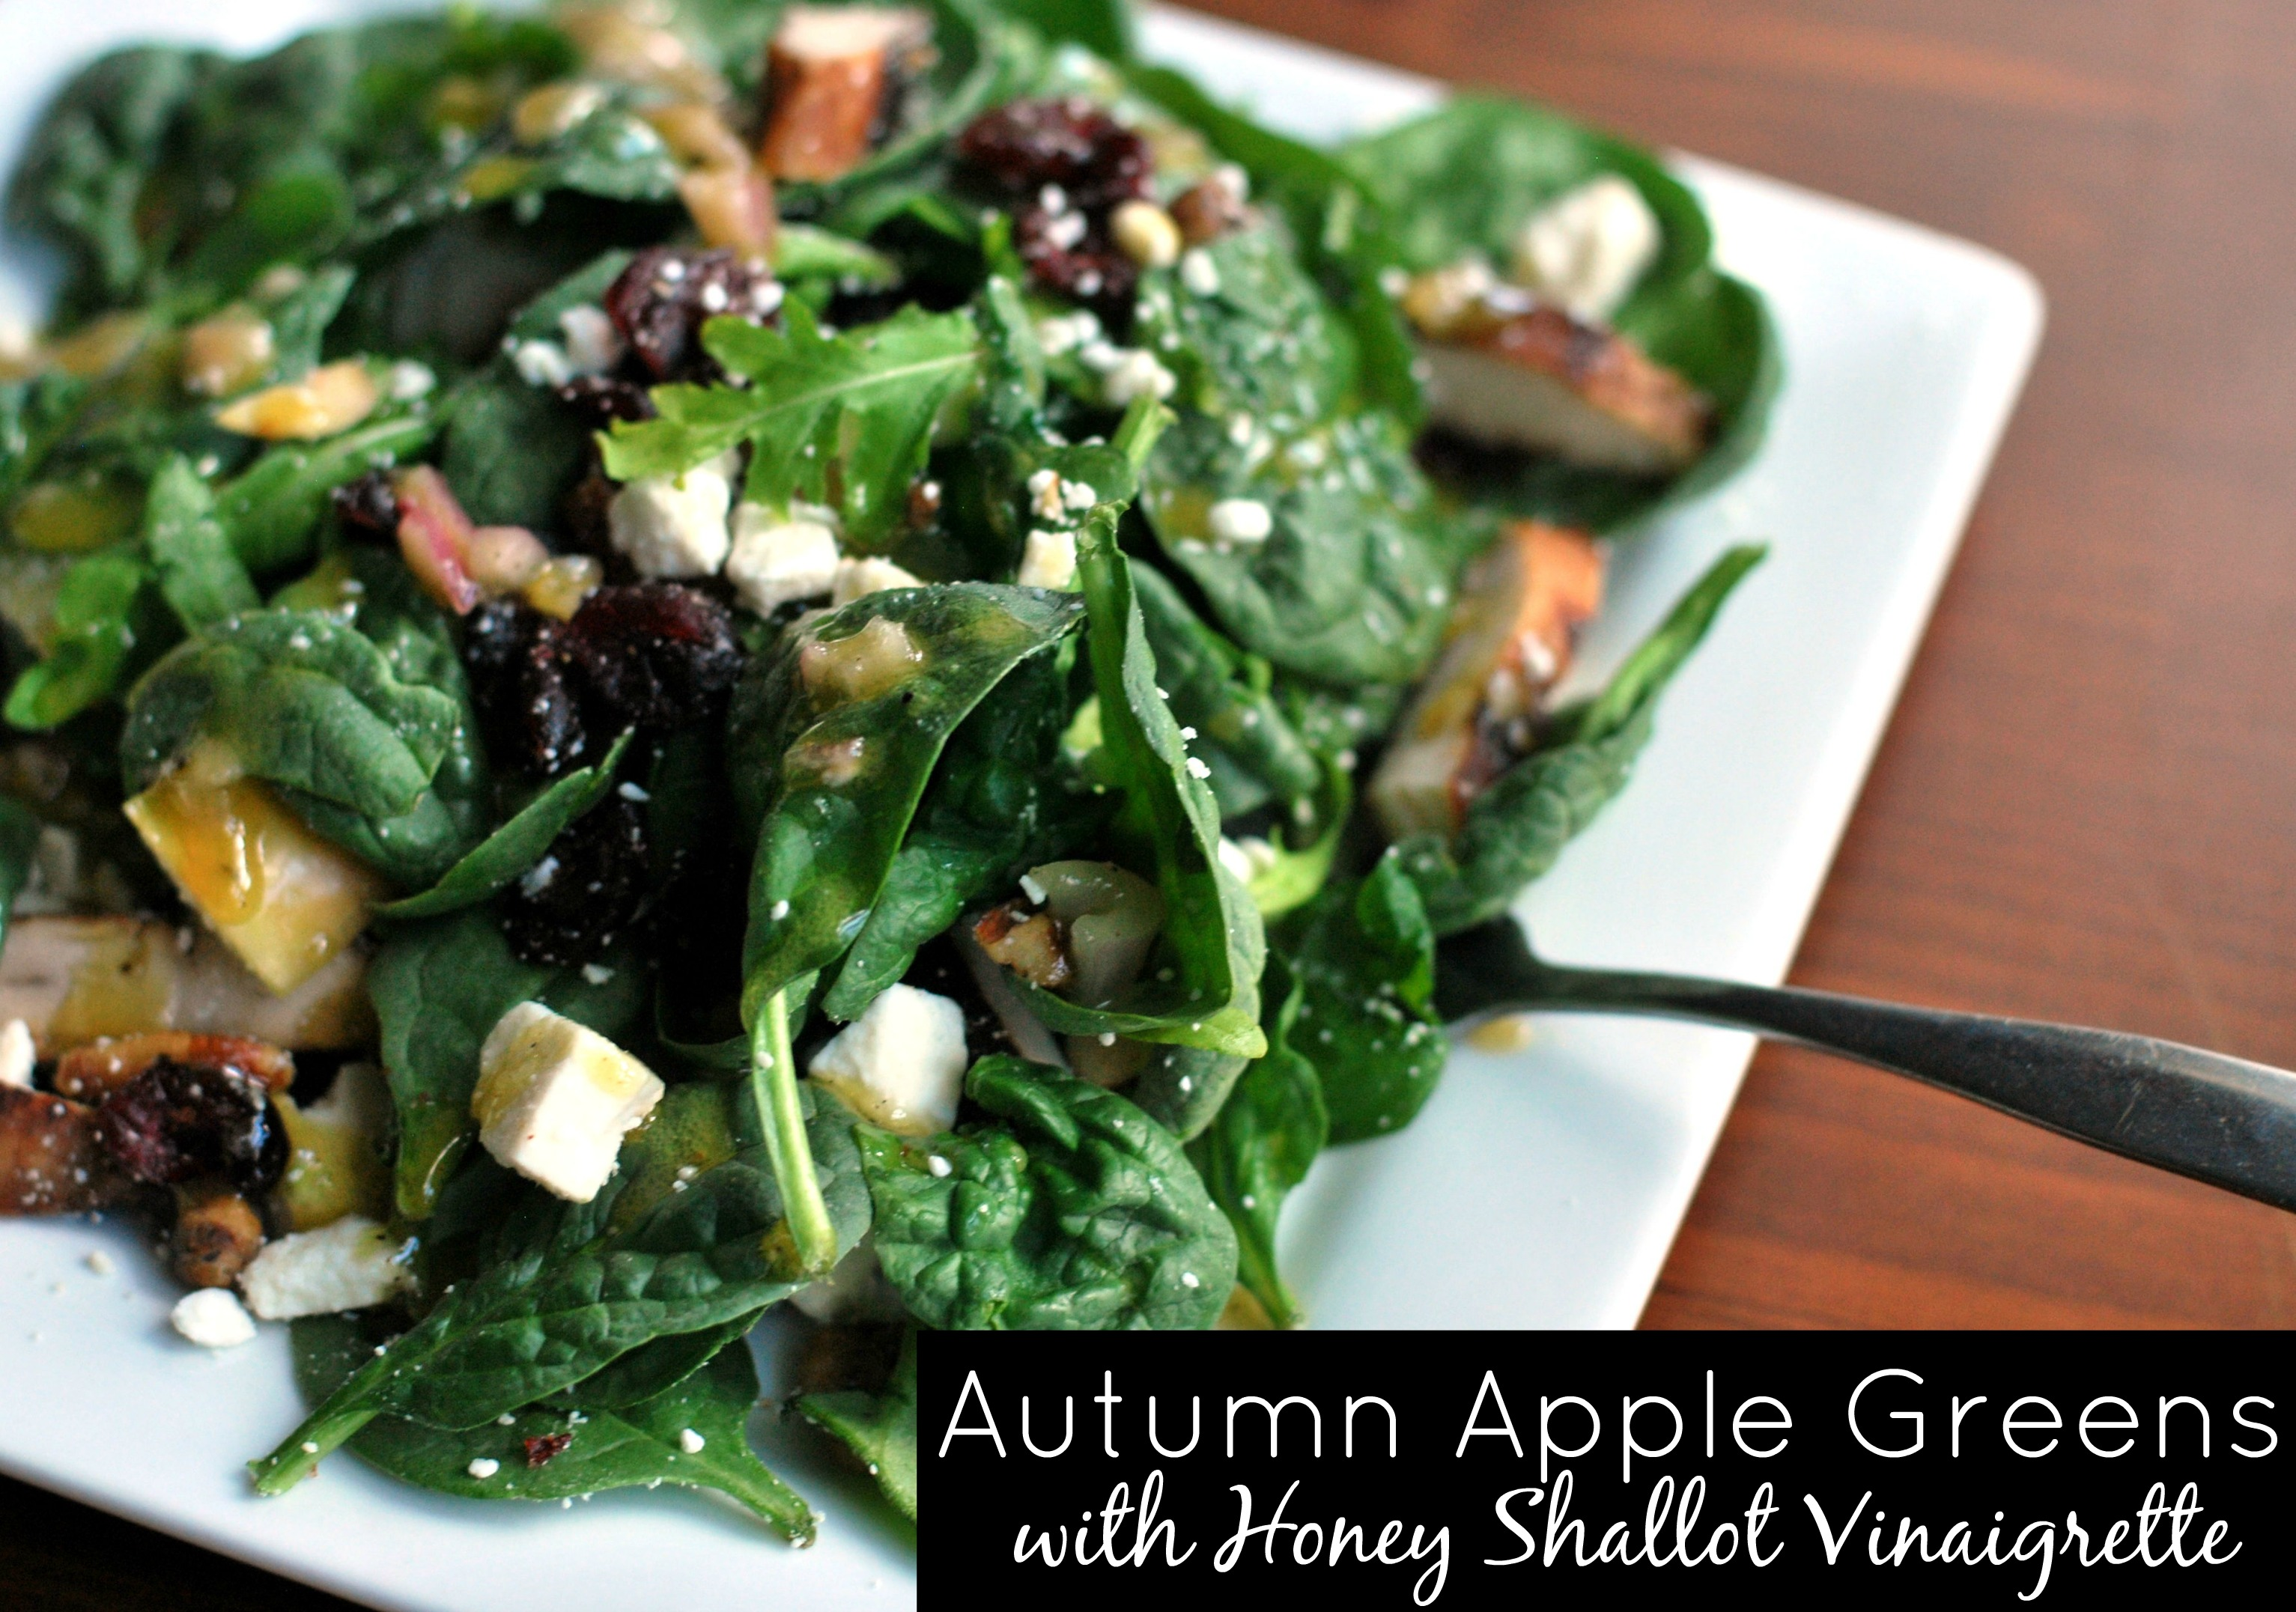 Autumn Apple Greens with Honey Shallot Vinaigrette